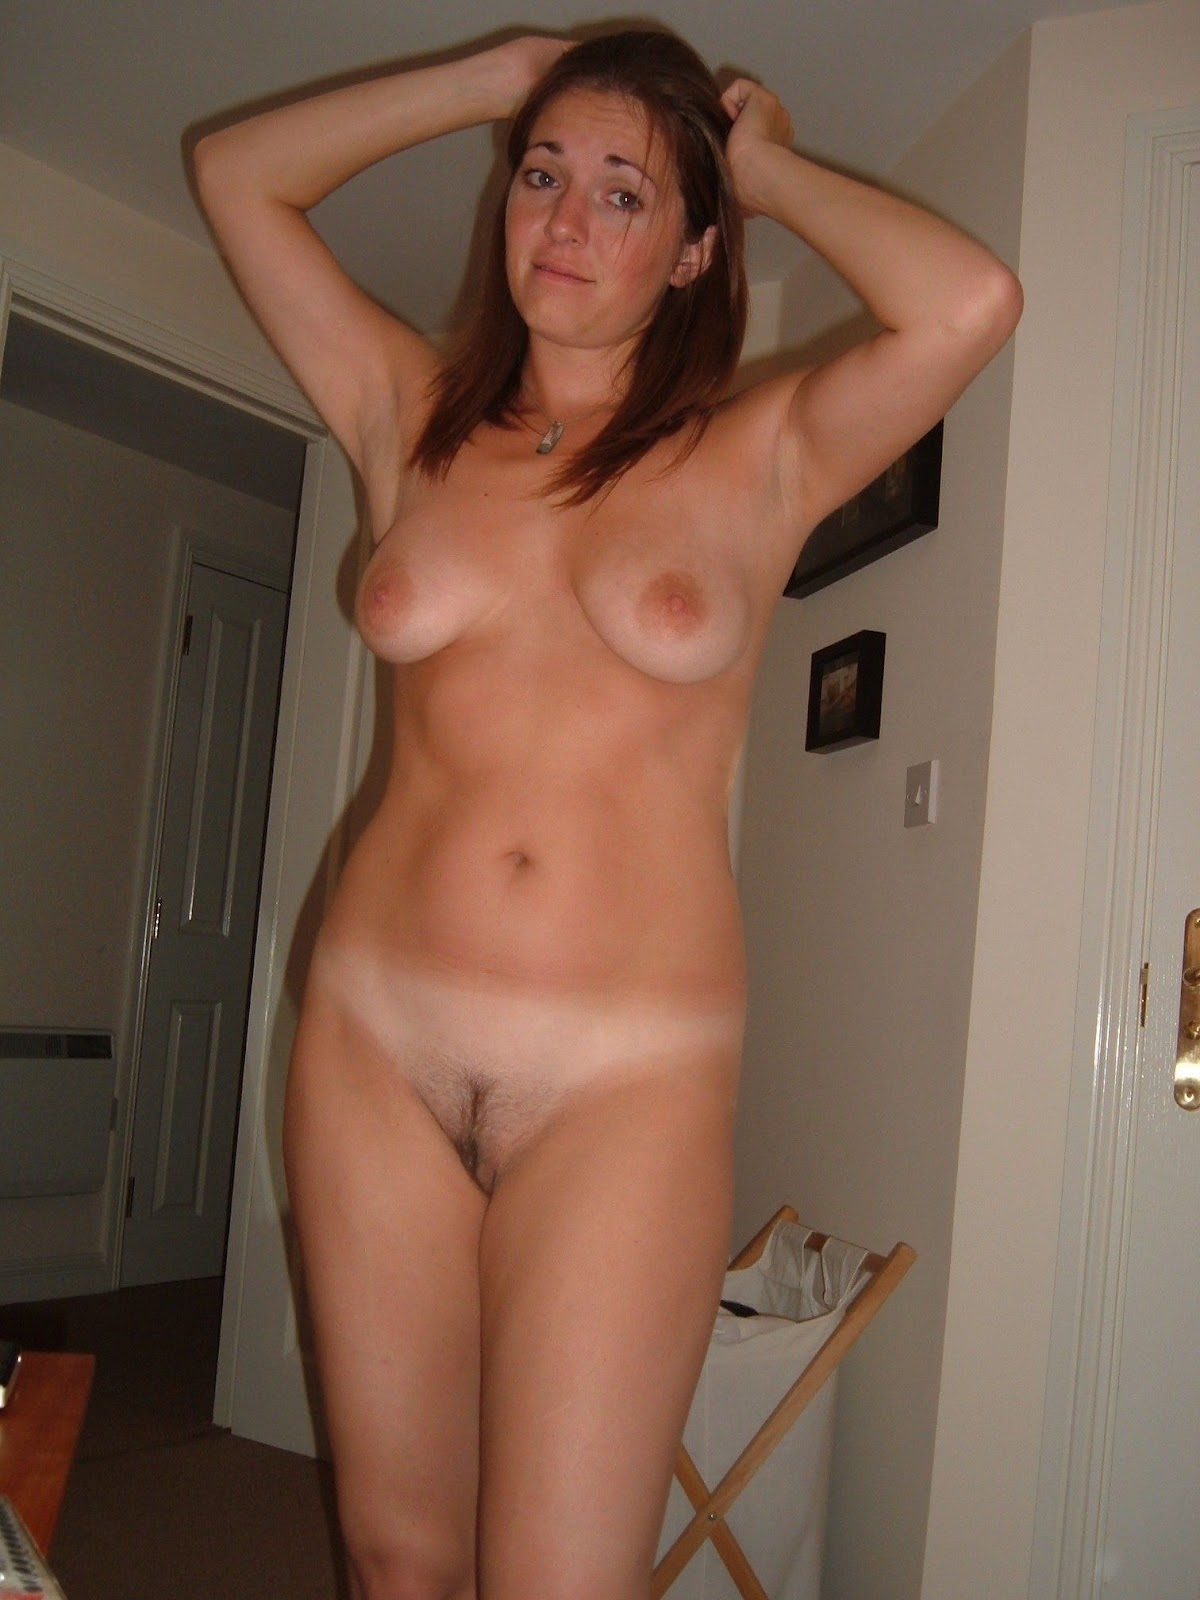 female caught in nude jpg 1200x900